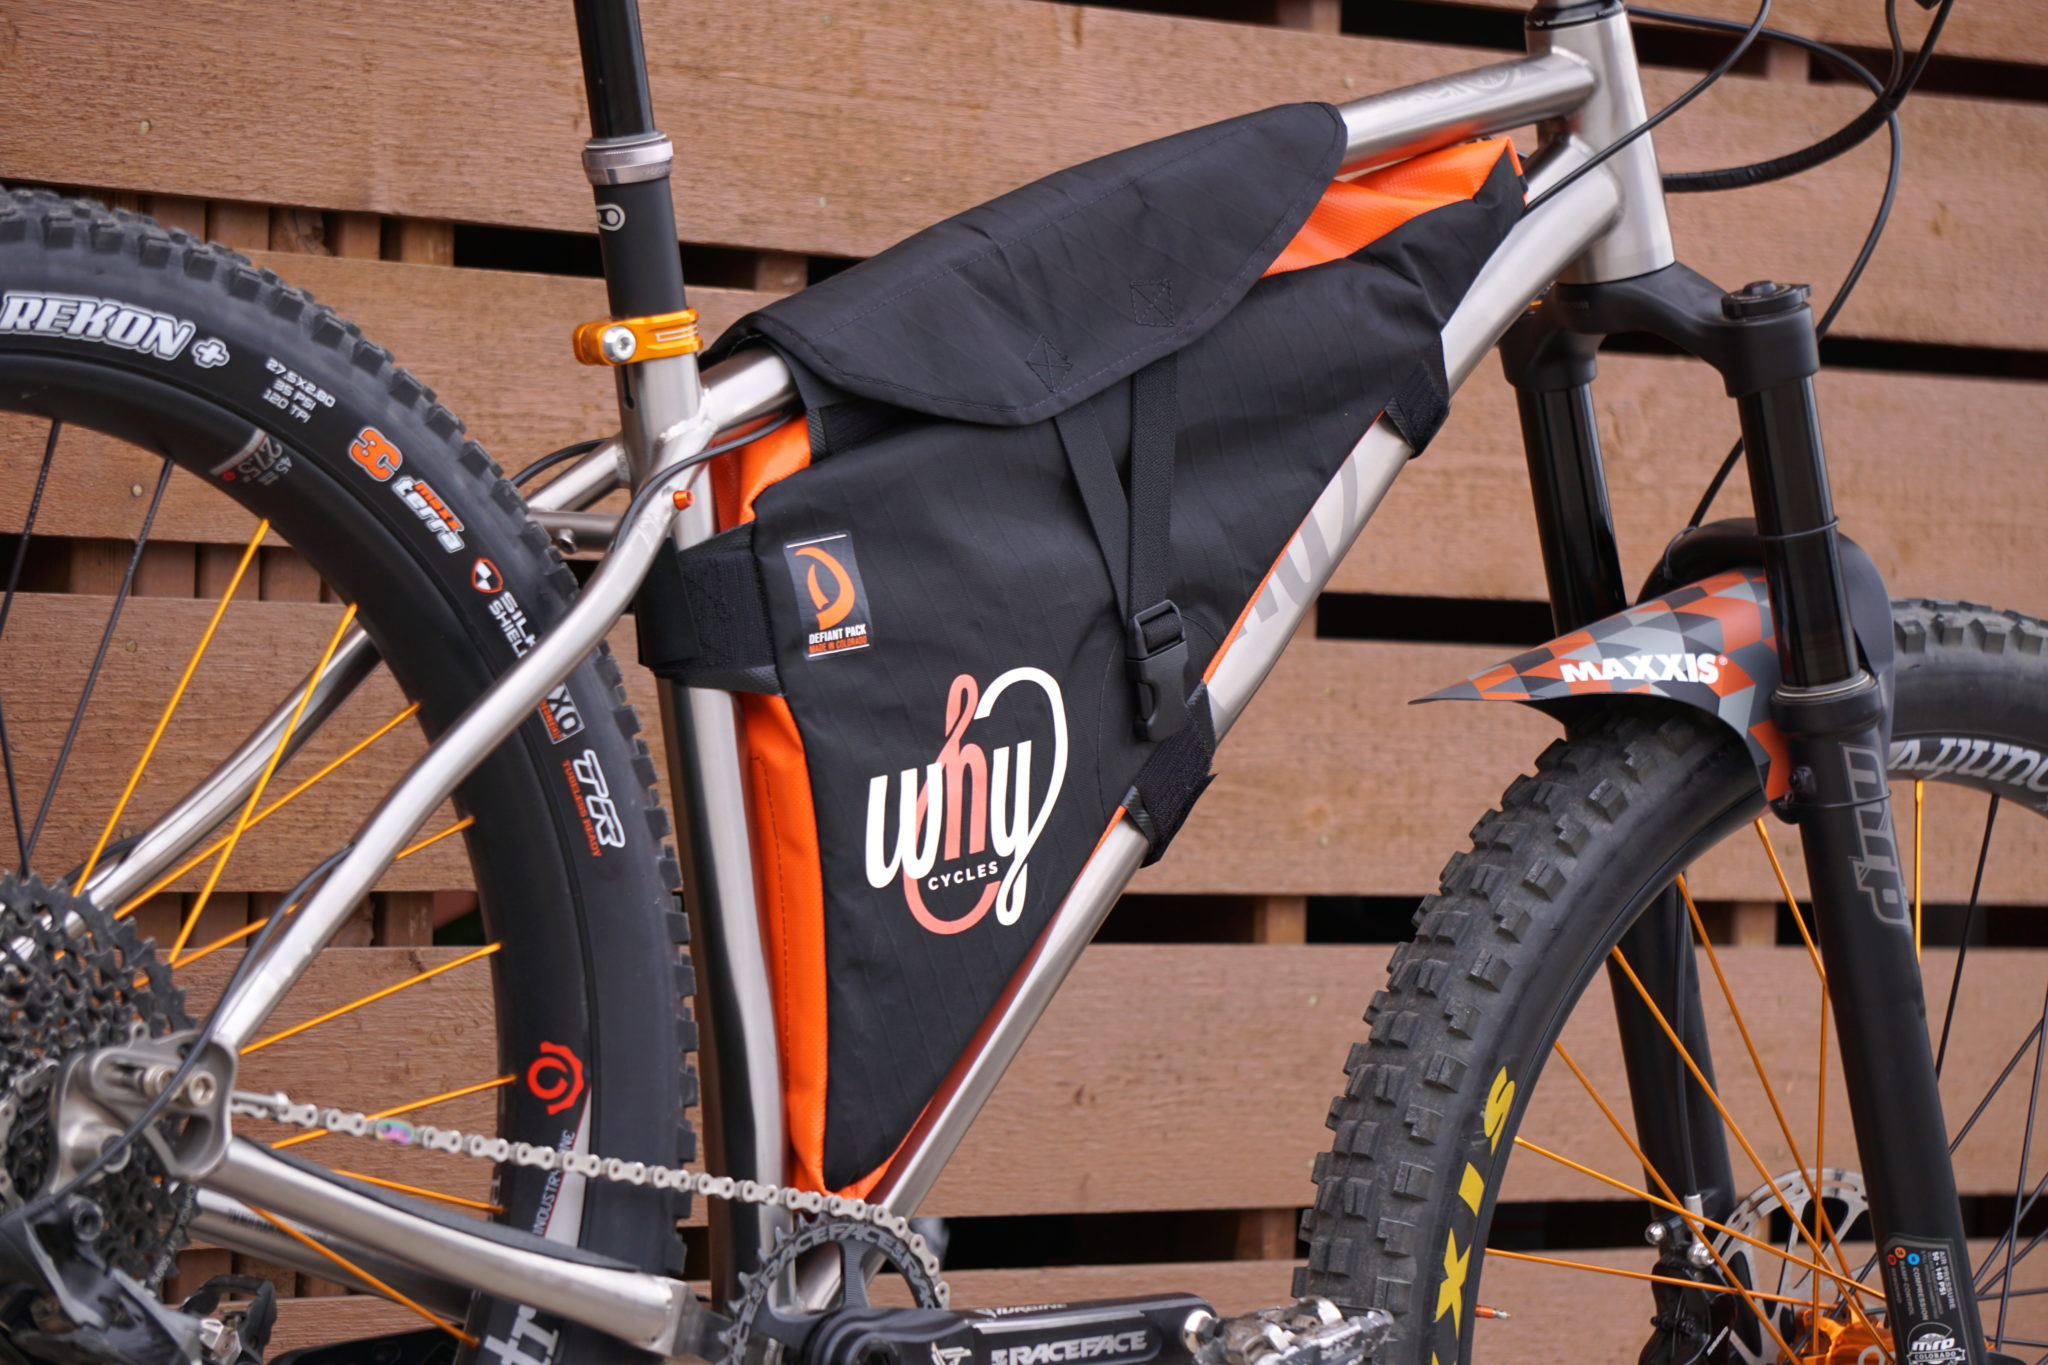 Defiant Pack Why Cycles Custom Frame Bag Why Cycles